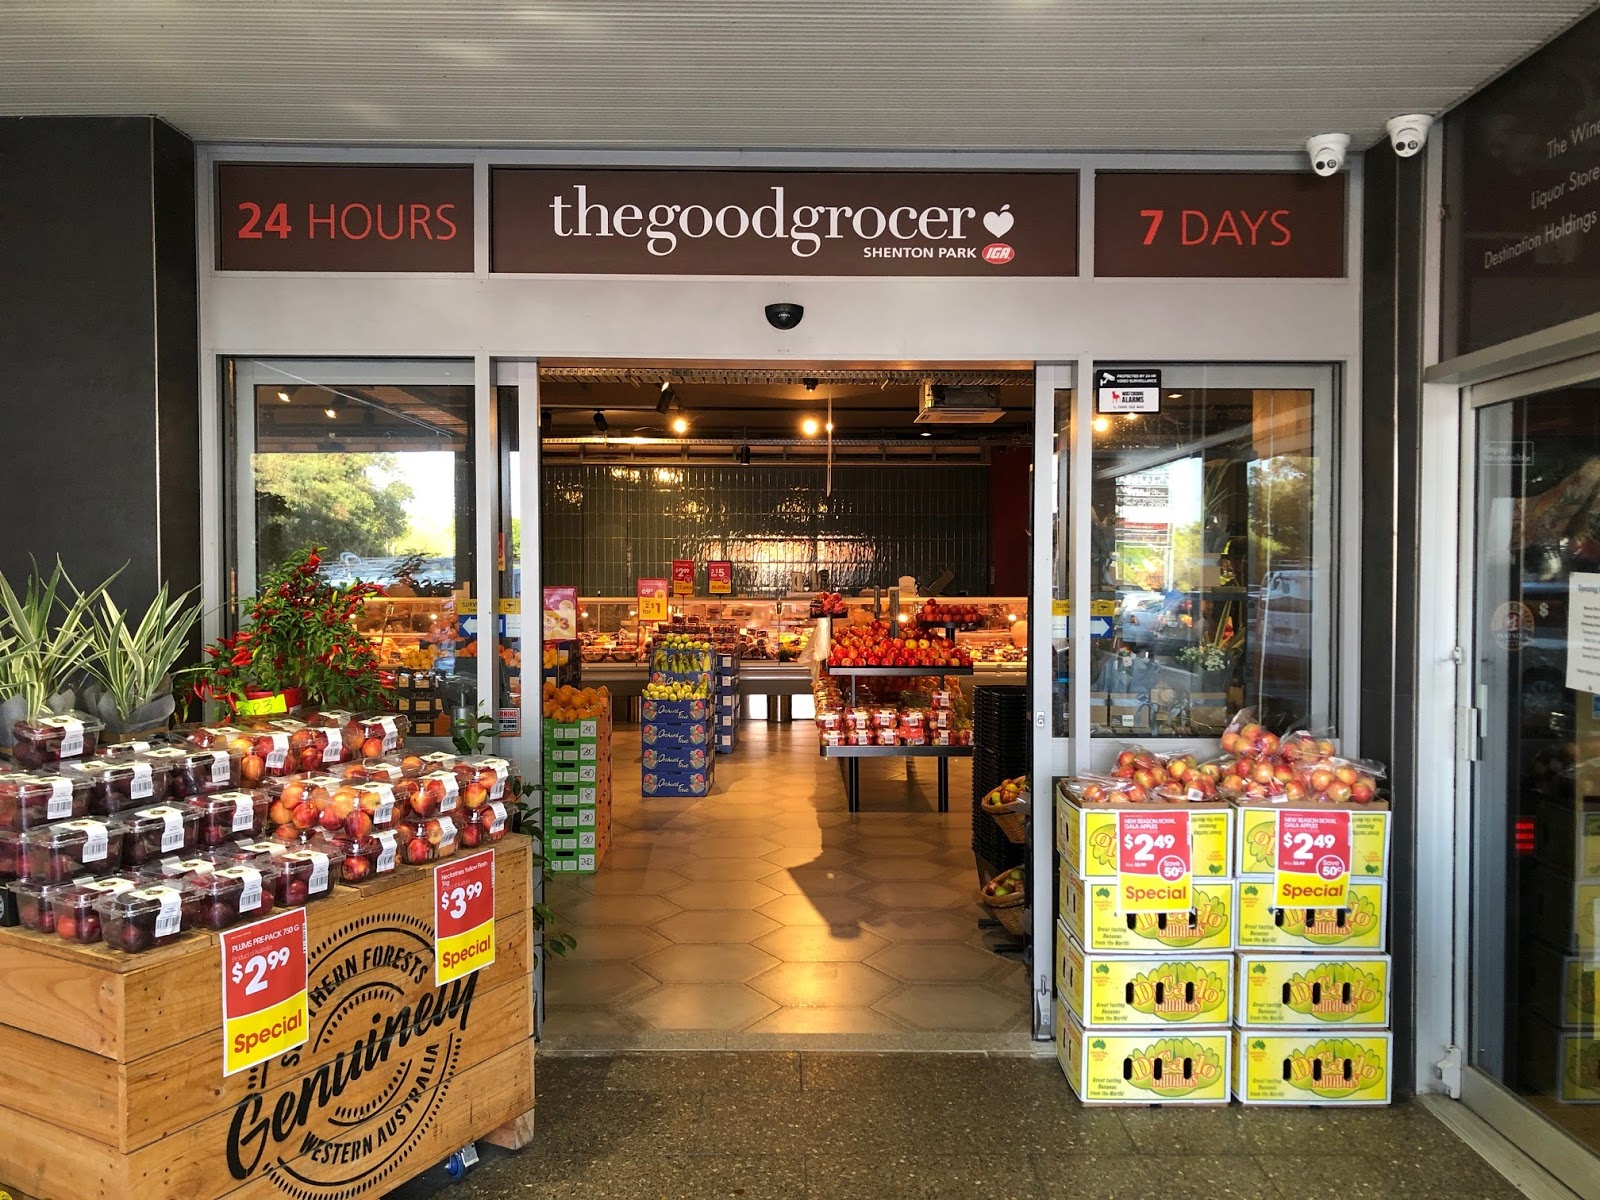 The Good Grocer Shenton Park IGA